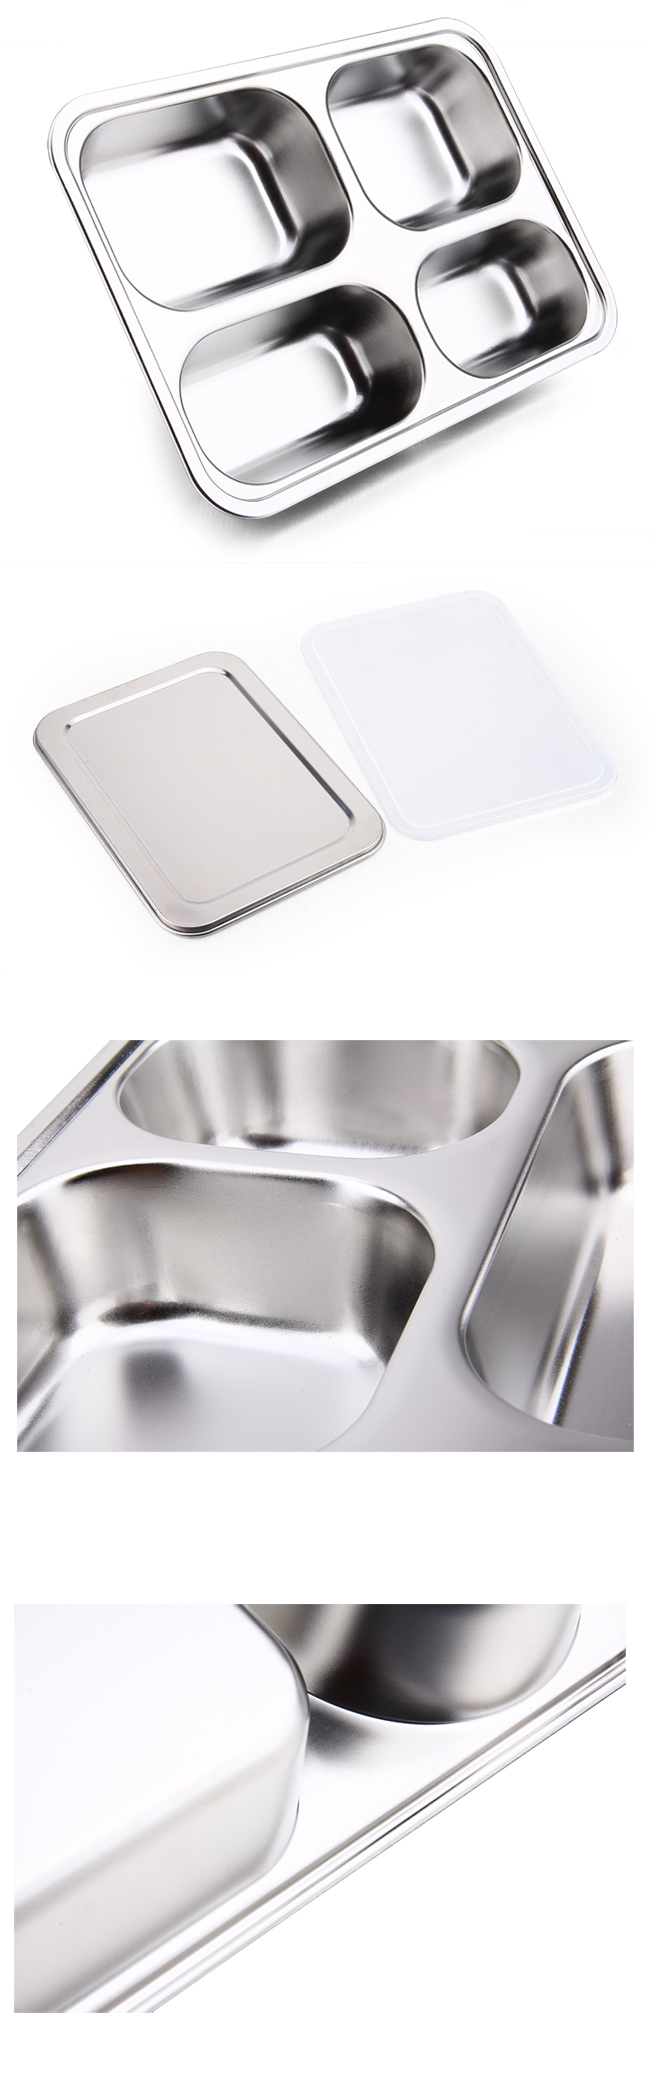 Large Capacity 304 Stainless Steel Fast Food Tray & Lunchbox with 4 Dividers